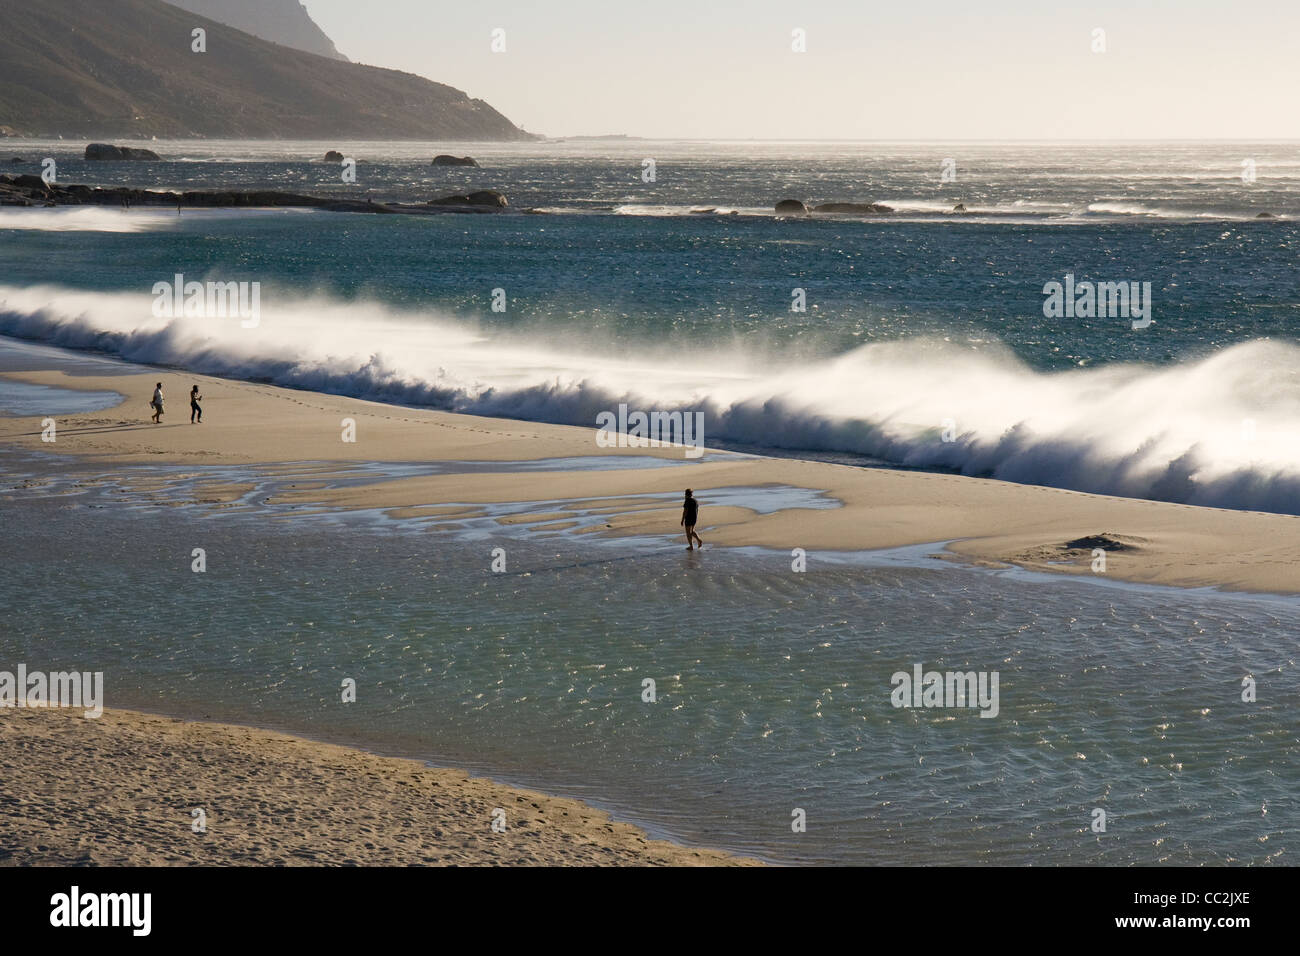 waves capetown - Stock Image